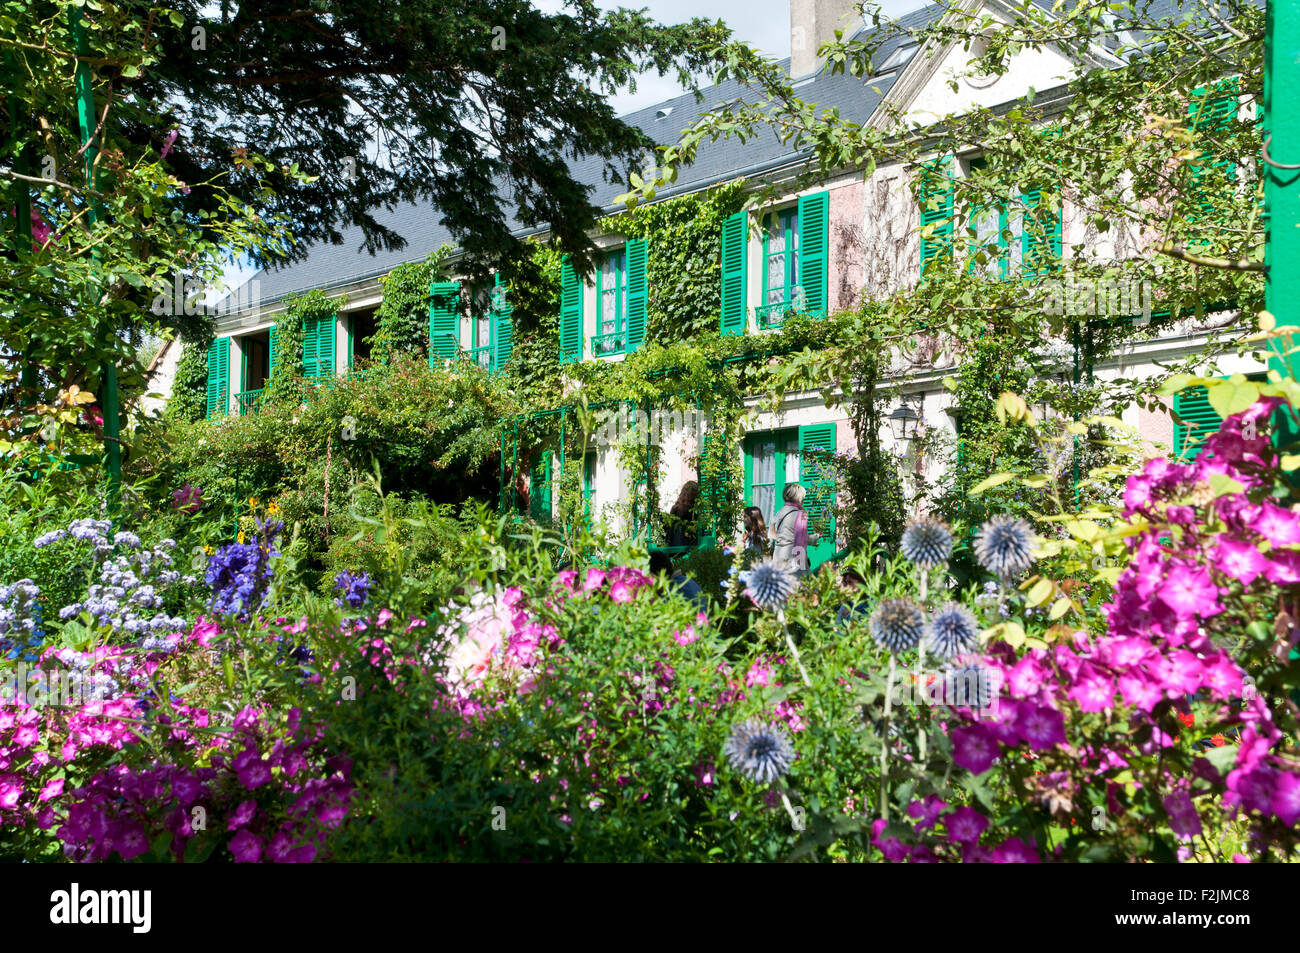 Claude Monet garden giverny departement eure france europe Stock Photo